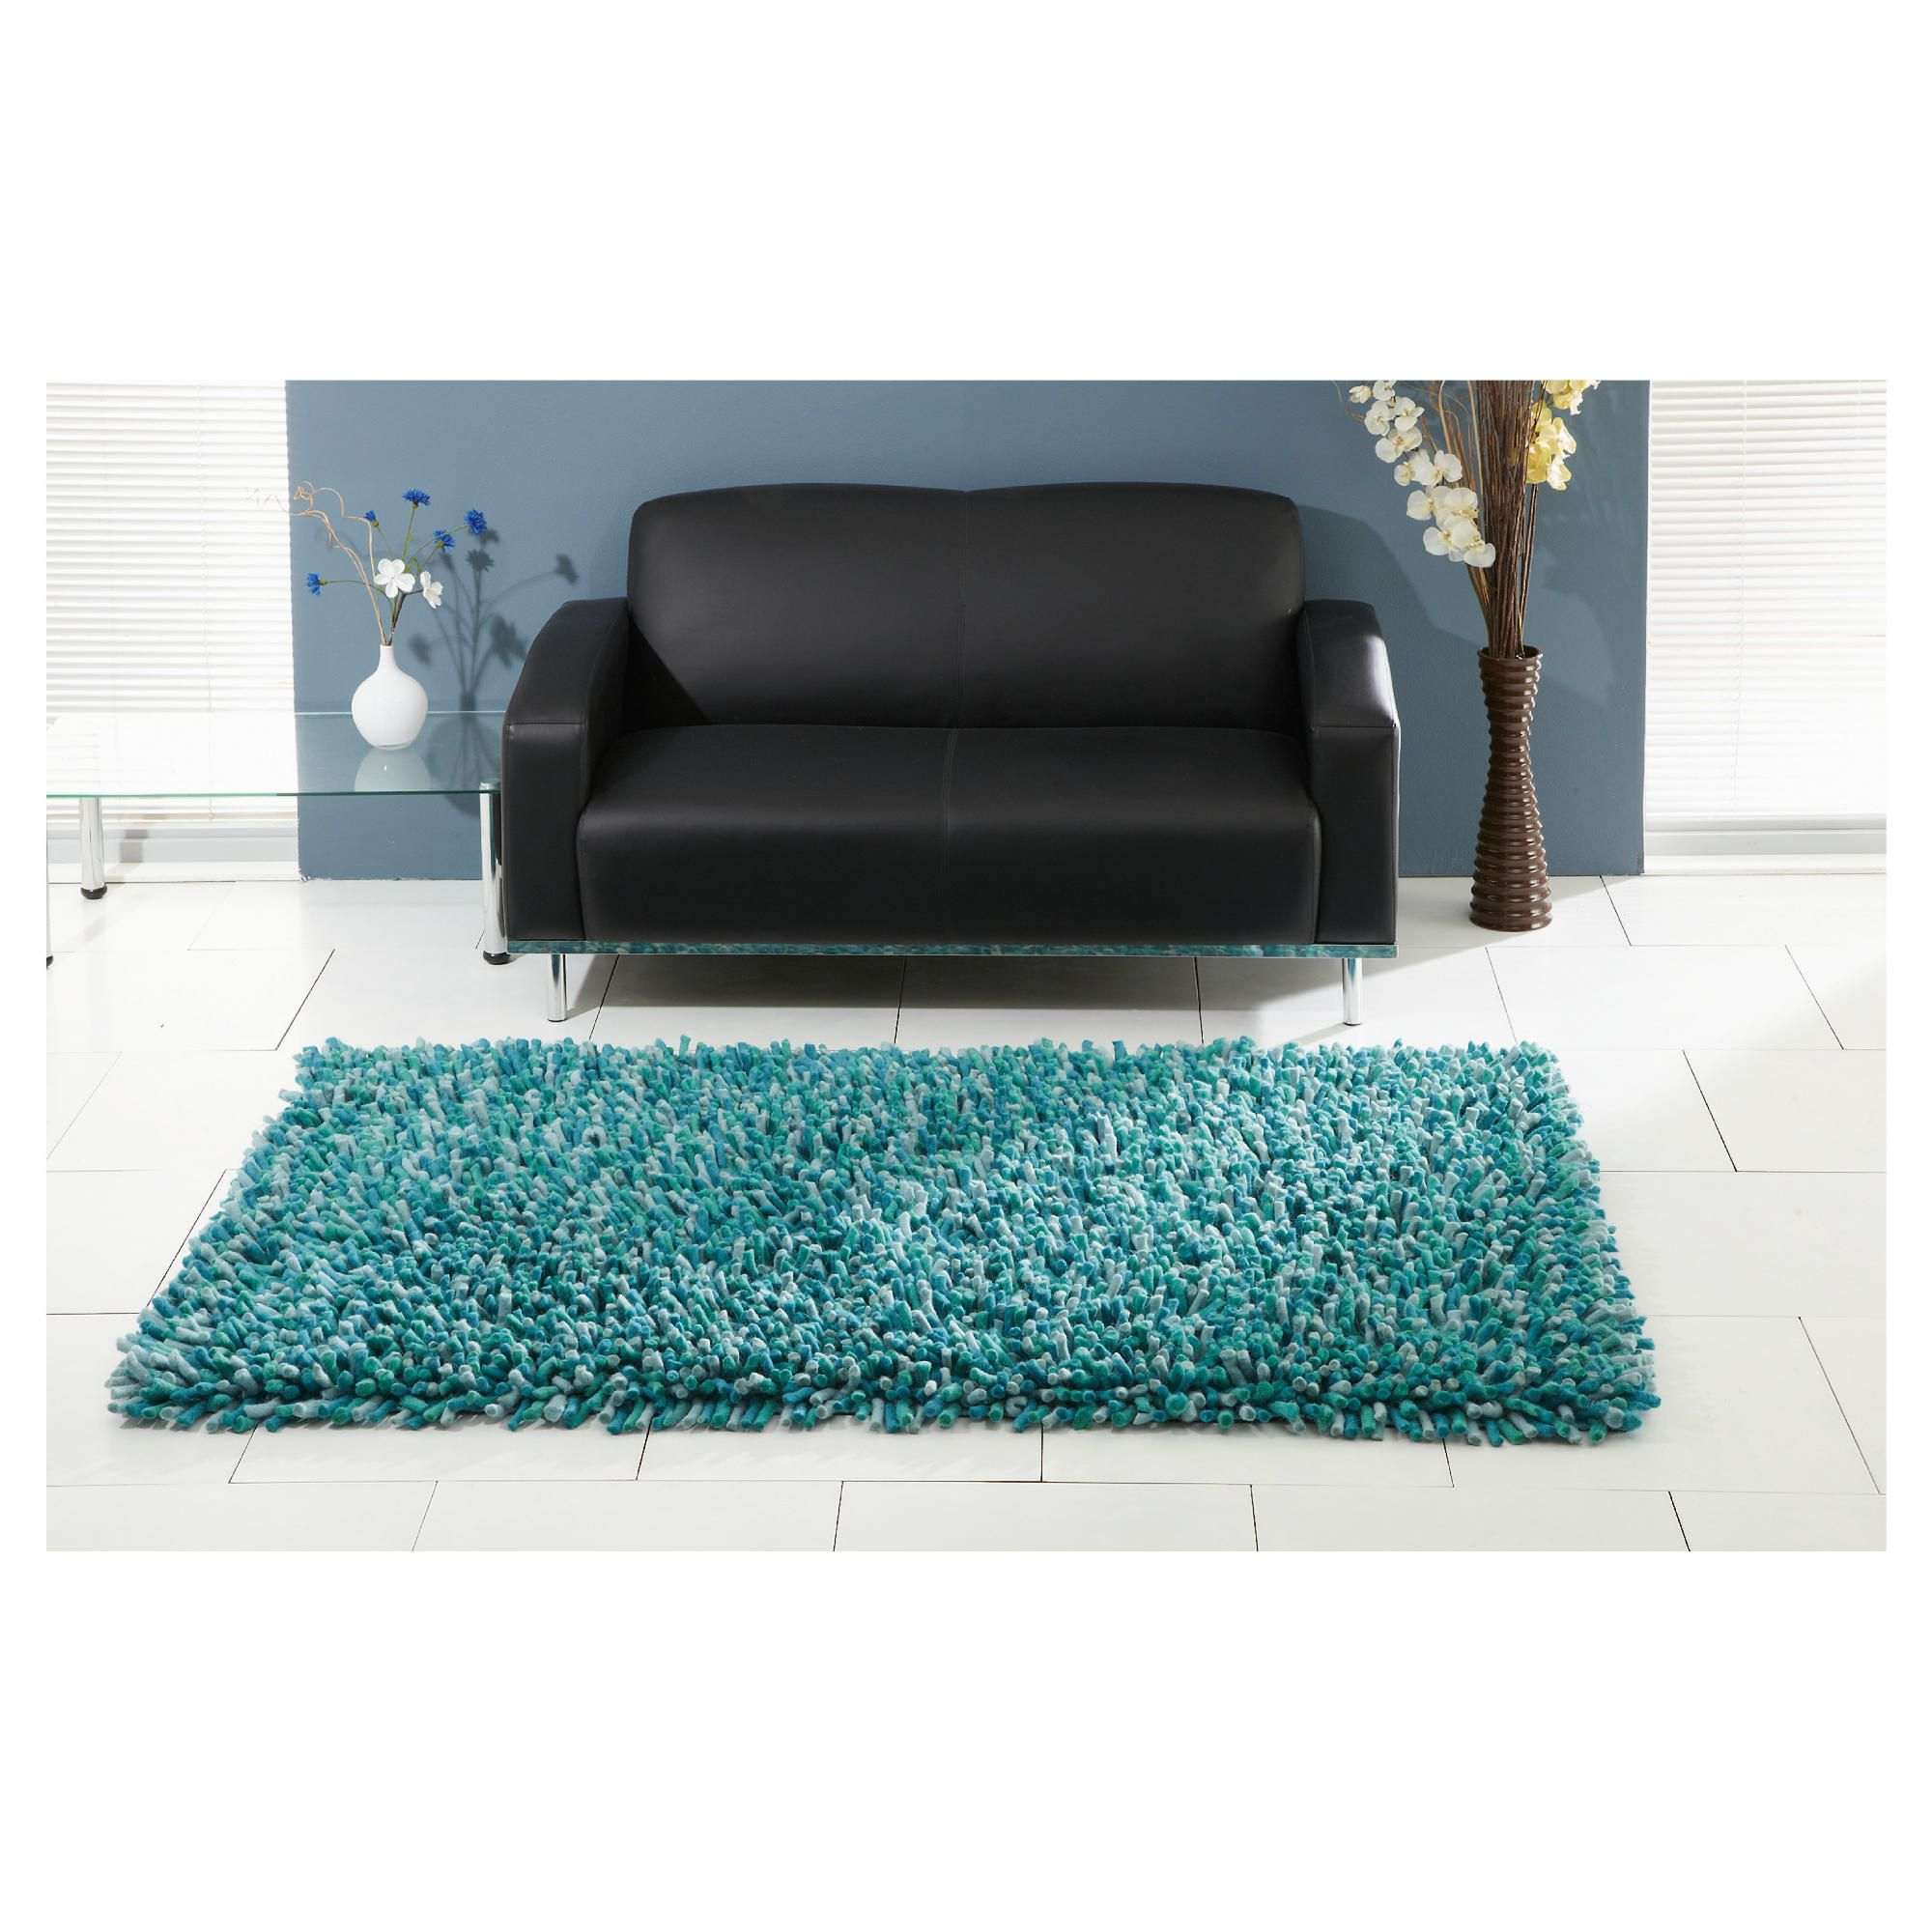 The Ultimate Rug co. Rocky Rug Teal 160x230cm at Tesco Direct